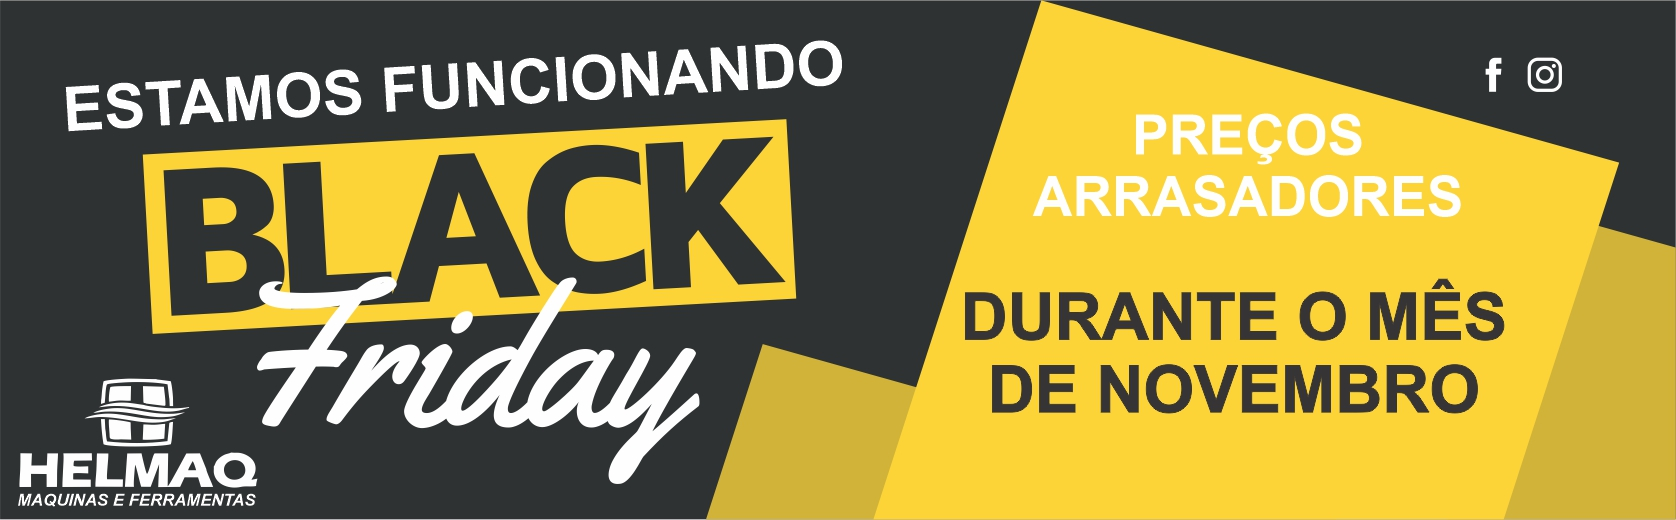 black friday e na helmaq